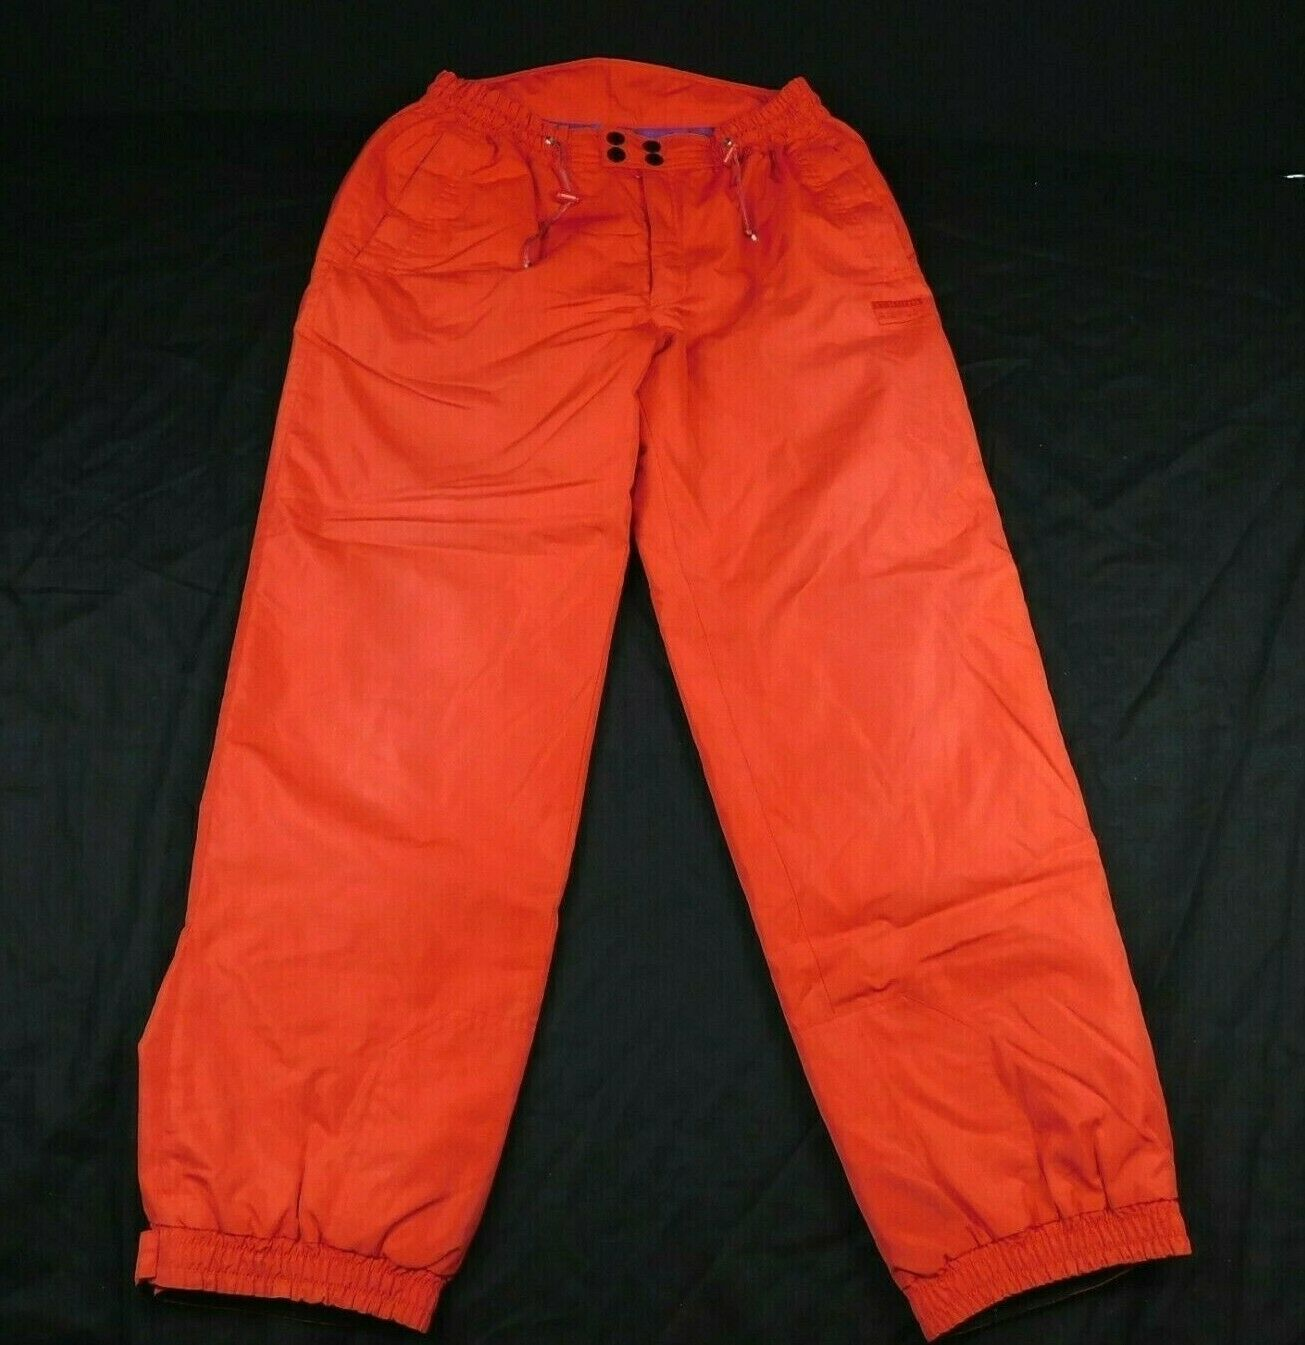 Tenson AirPush Red Ski Pants Sz XL W 34-38 L 33 Elastic Waist Draw String image 2